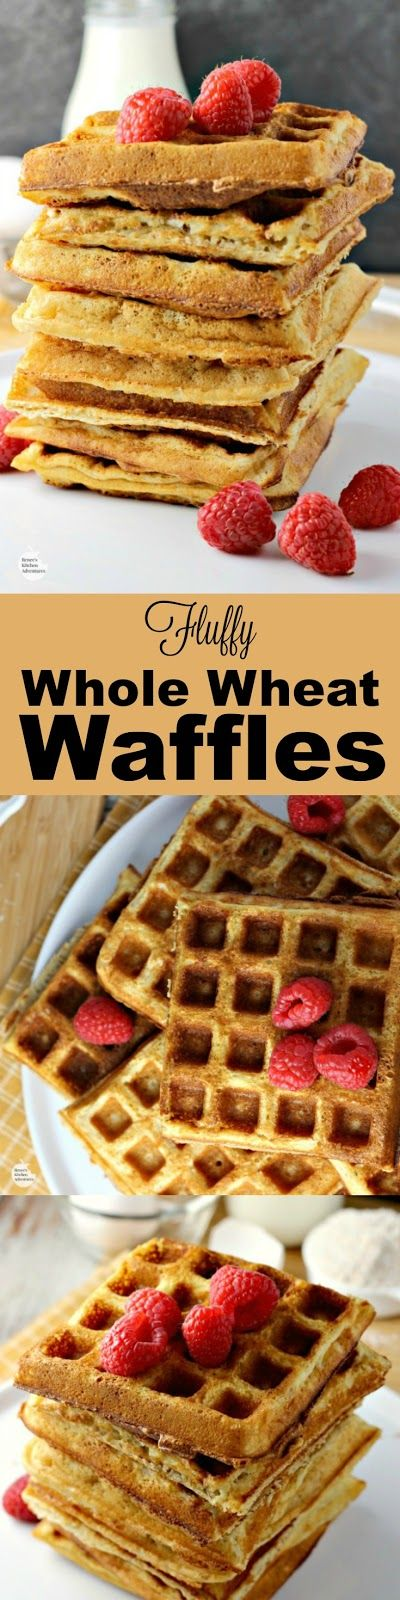 1000+ ideas about Whole Wheat Waffles on Pinterest ...